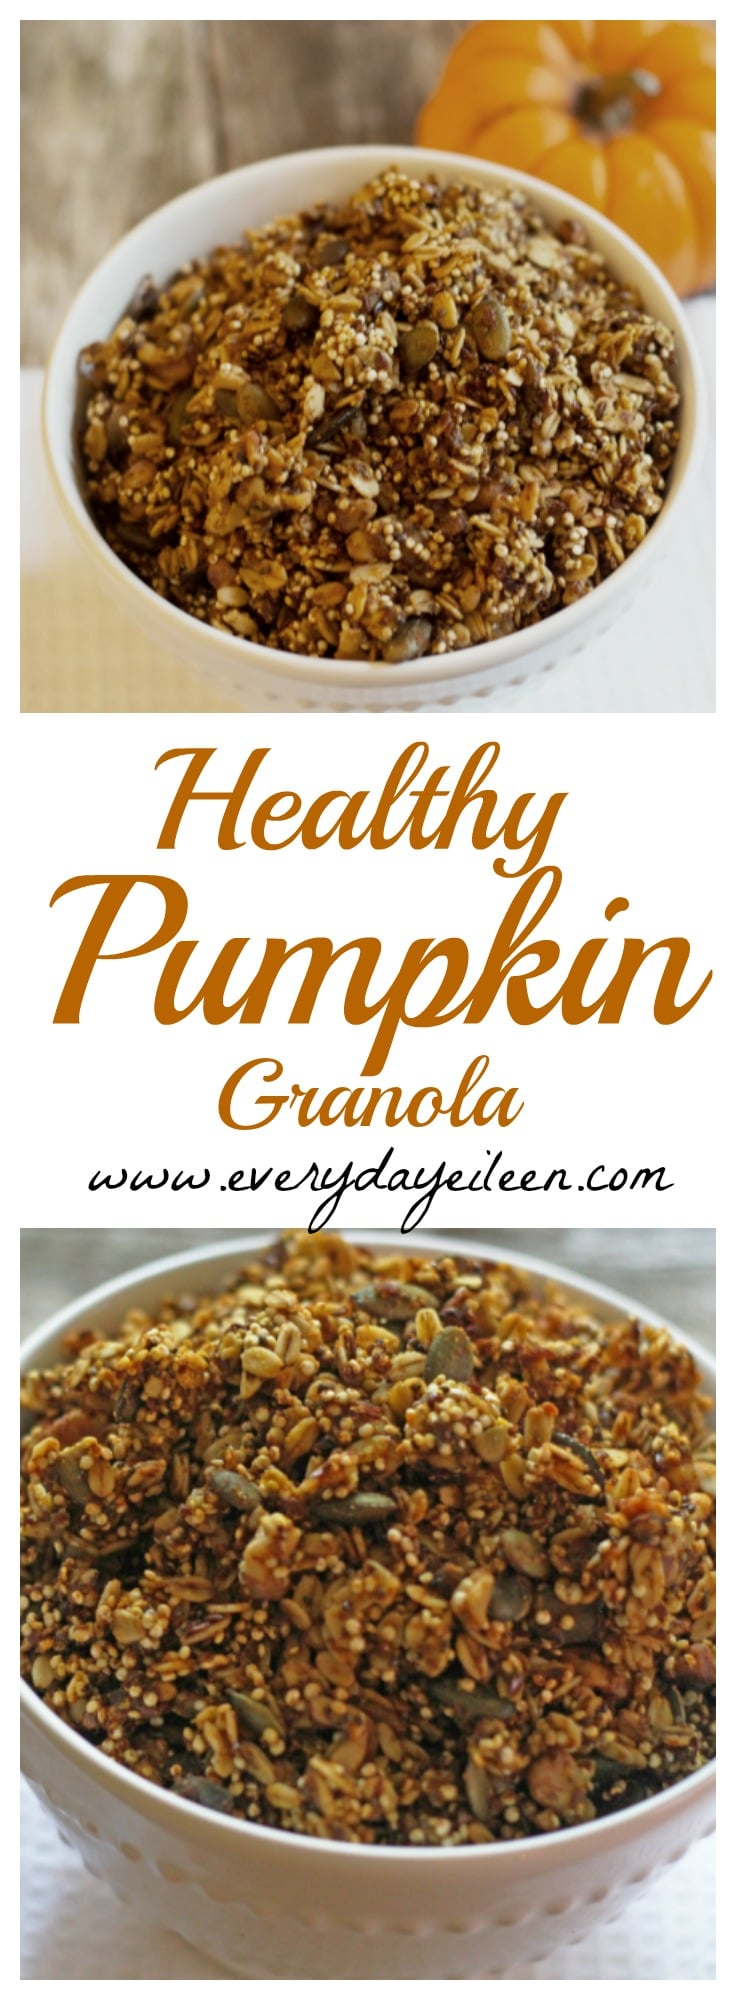 healthy-pumpkin-granola-pin